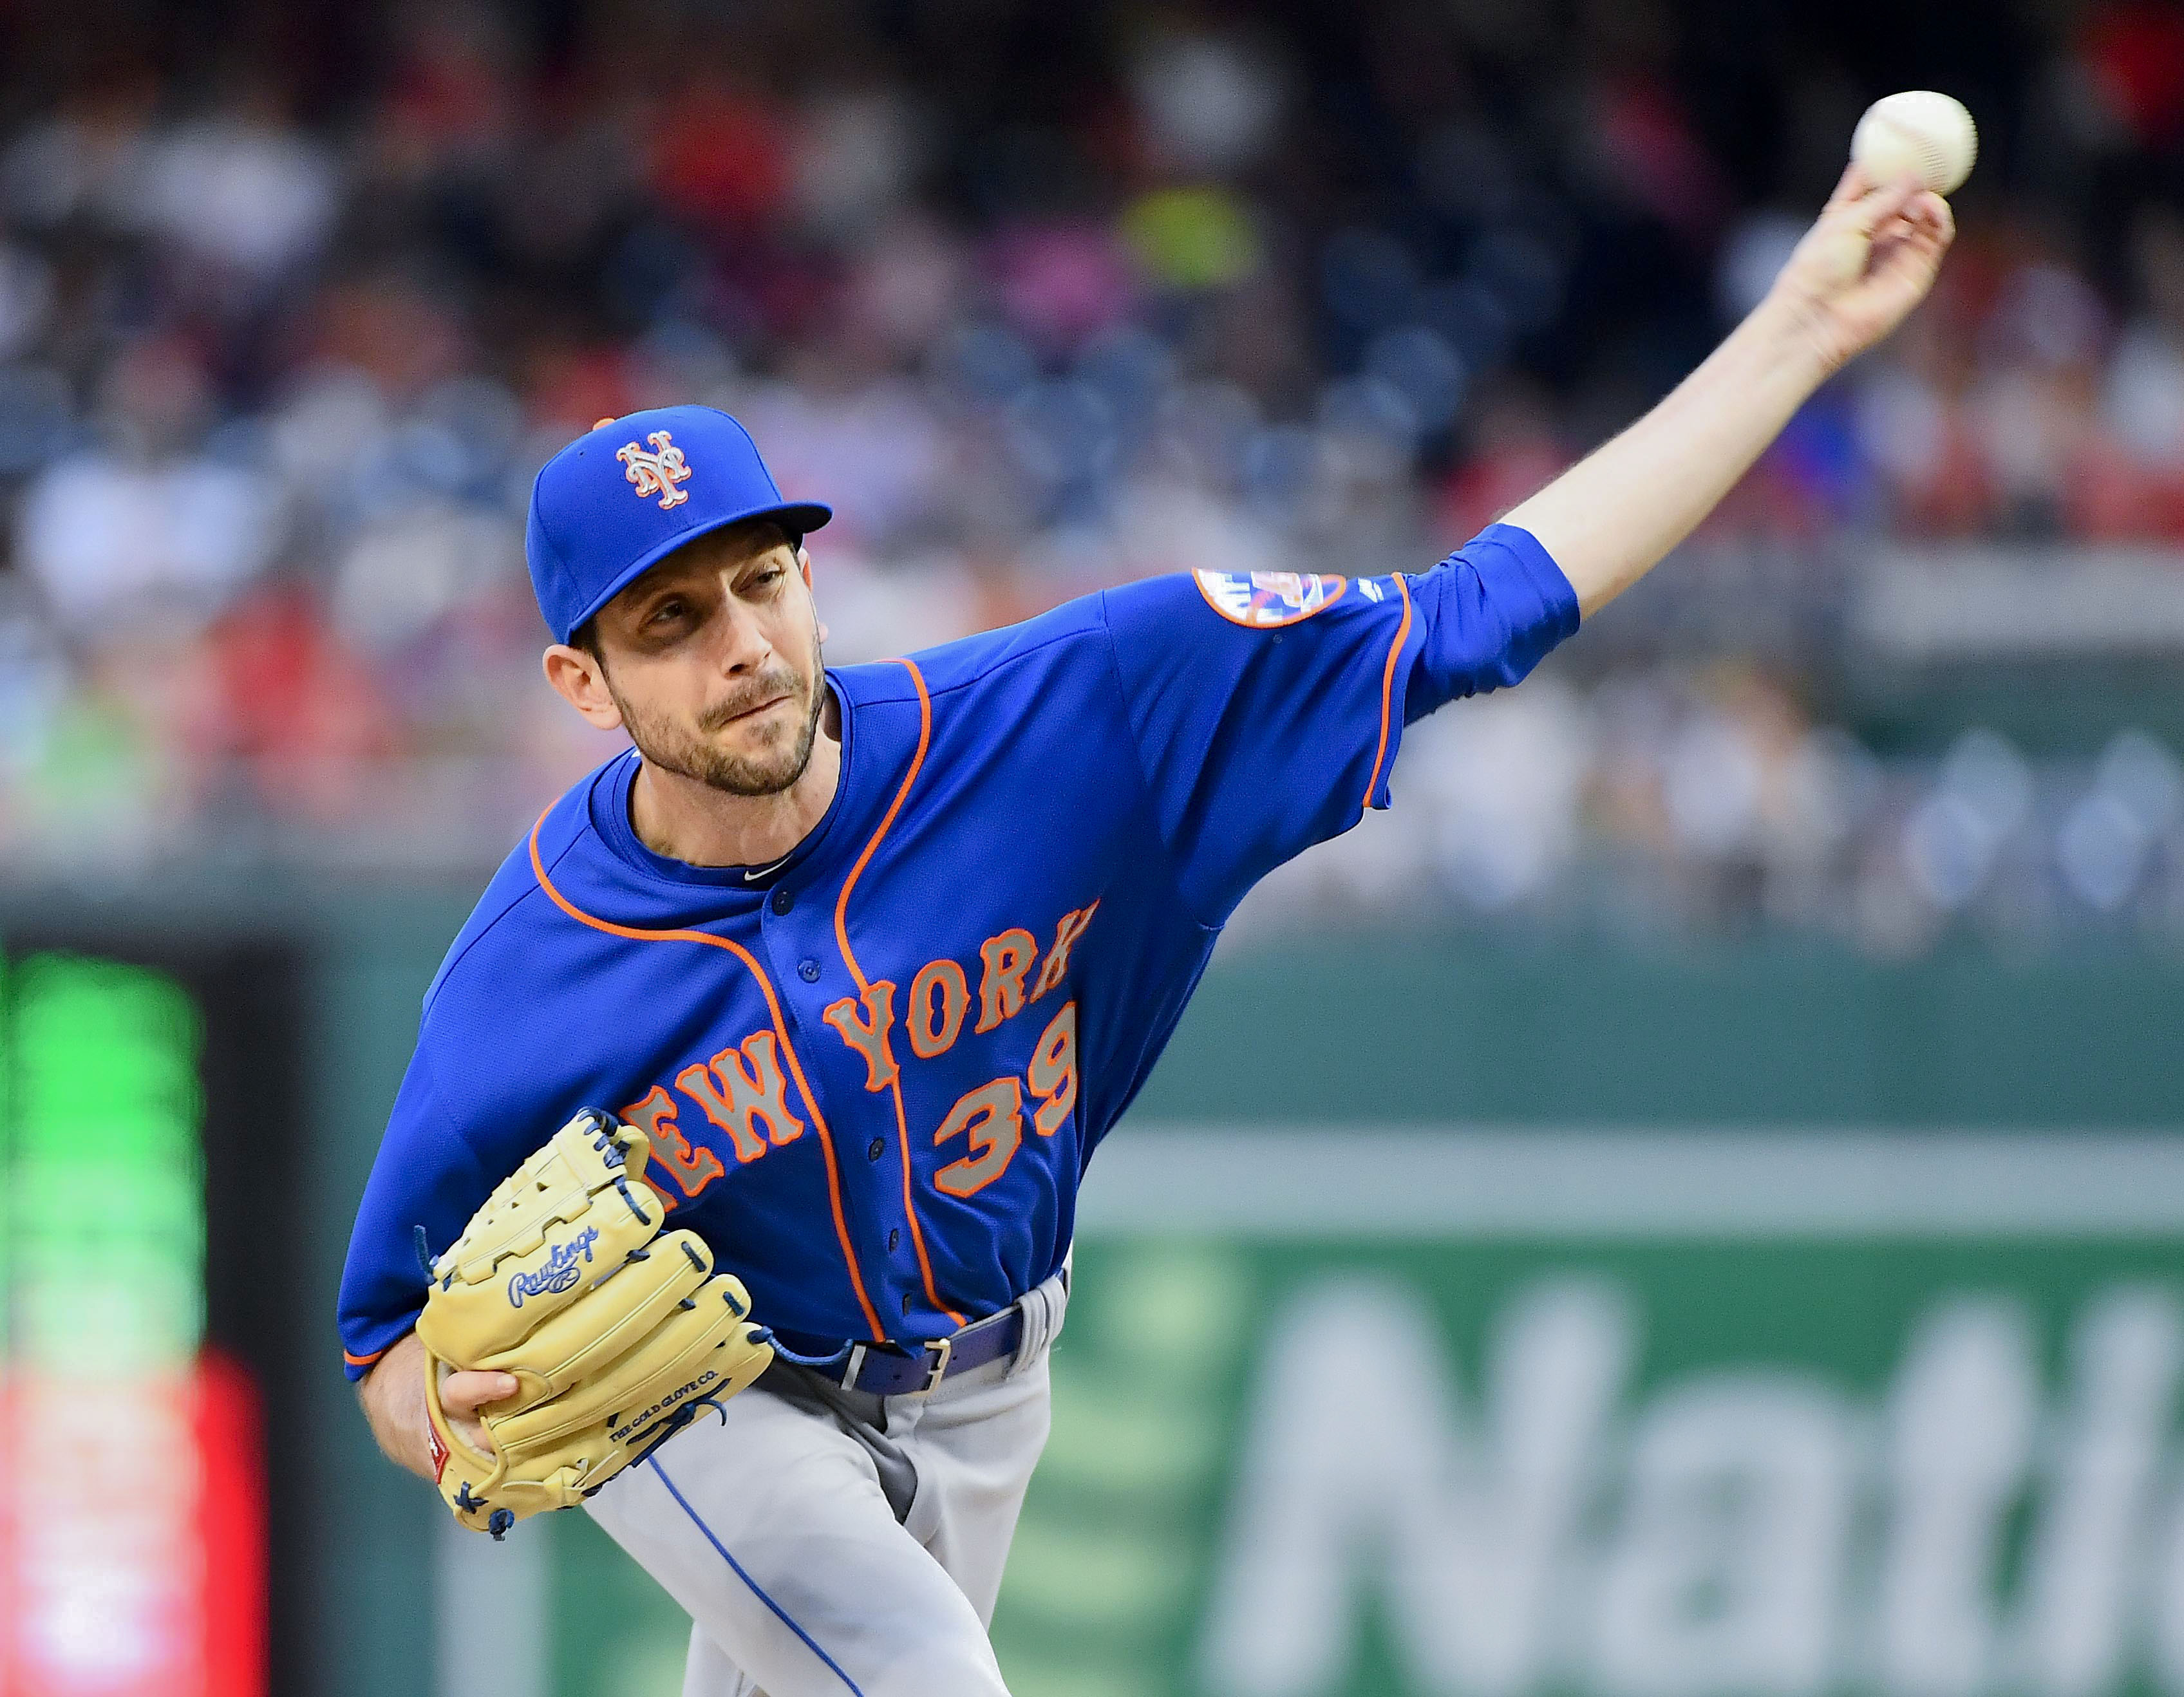 New York Mets 2018 Season In Review: Bullpen